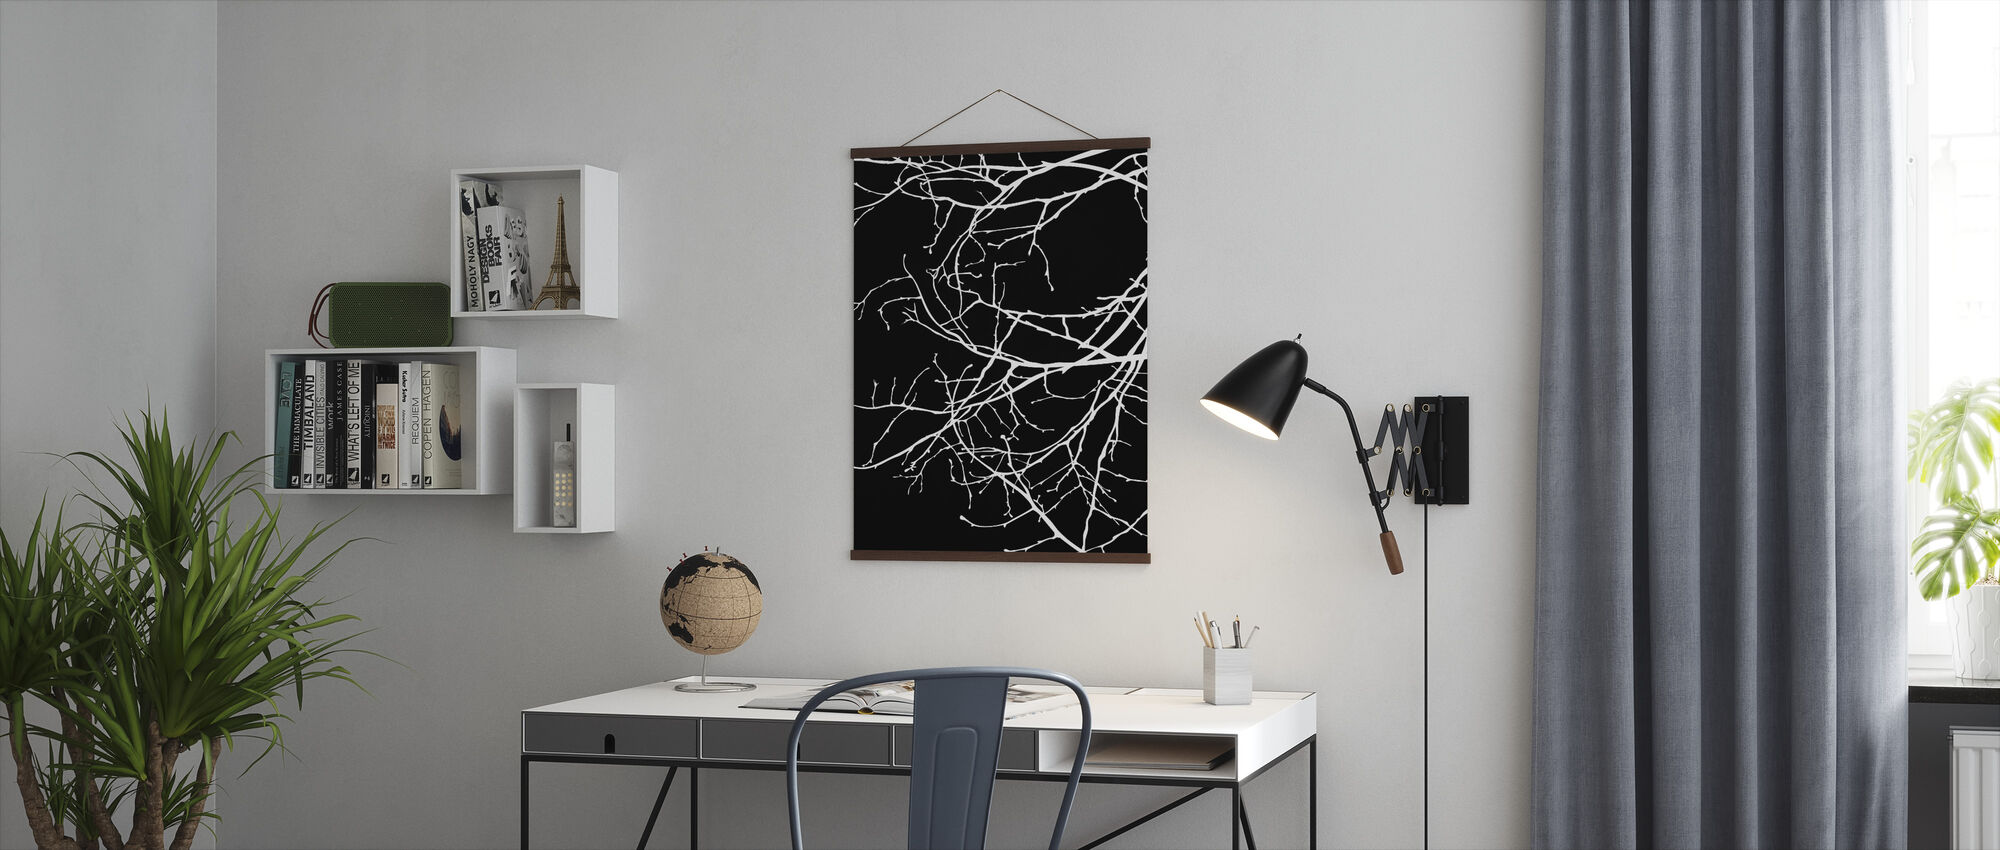 Twiggy - White - Poster - Office